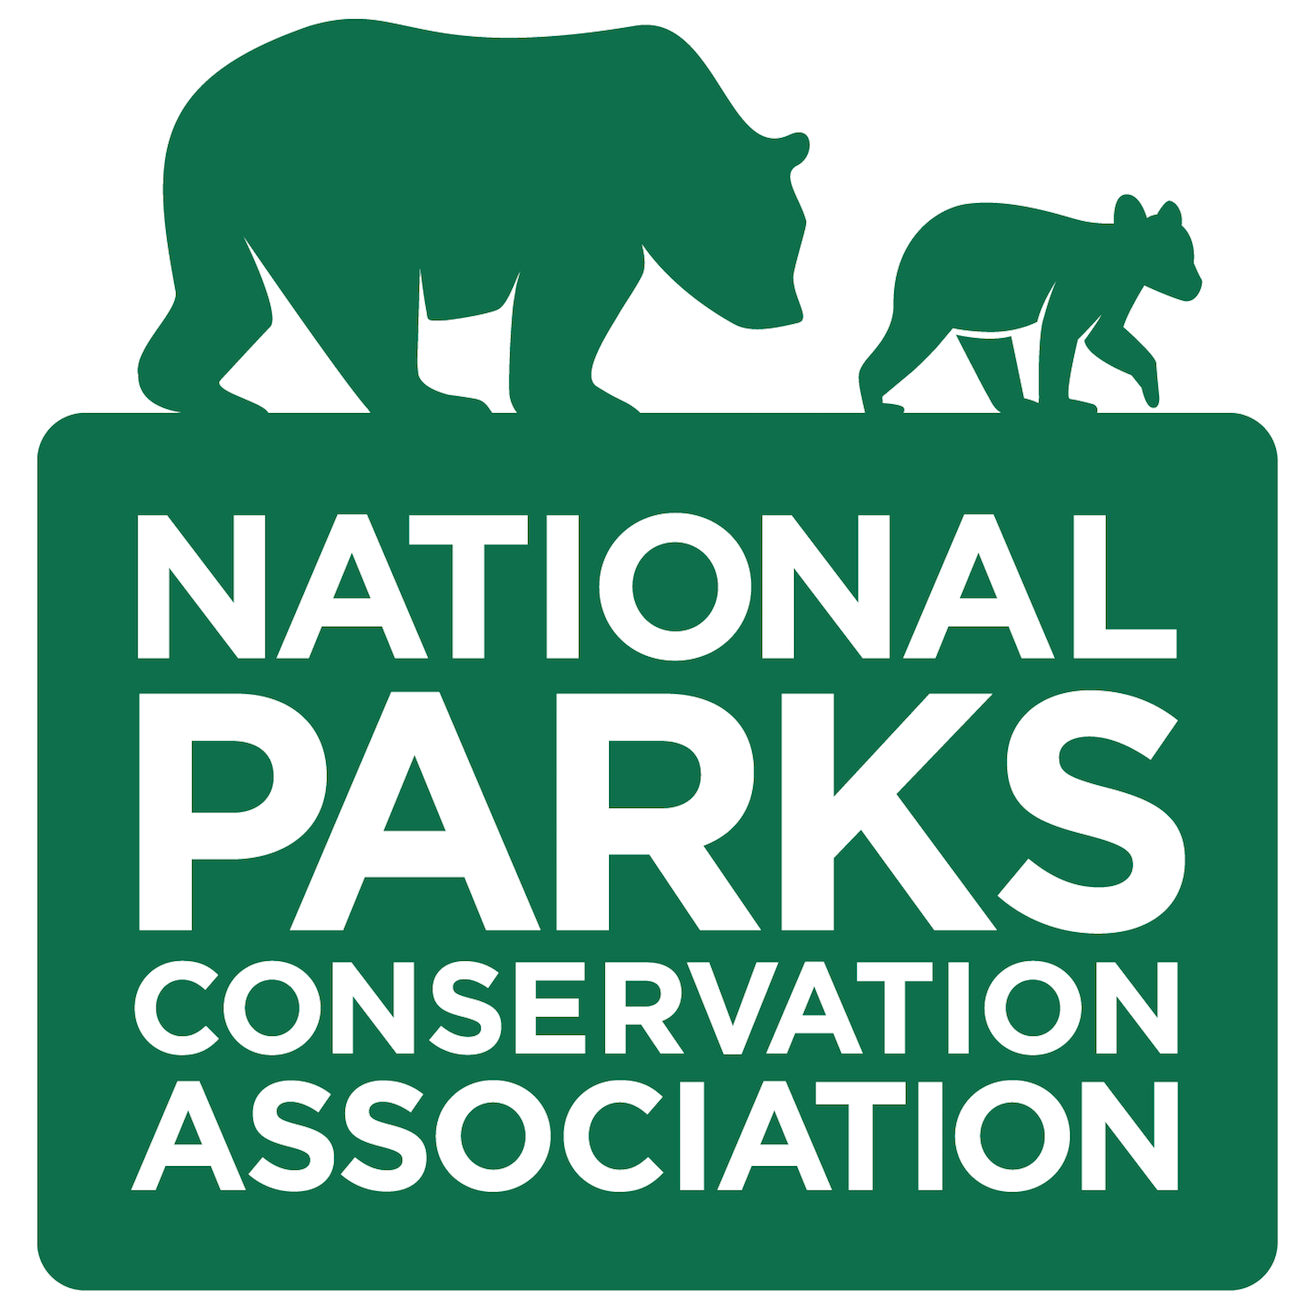 National Parks Conservation Association Logo 2016.png